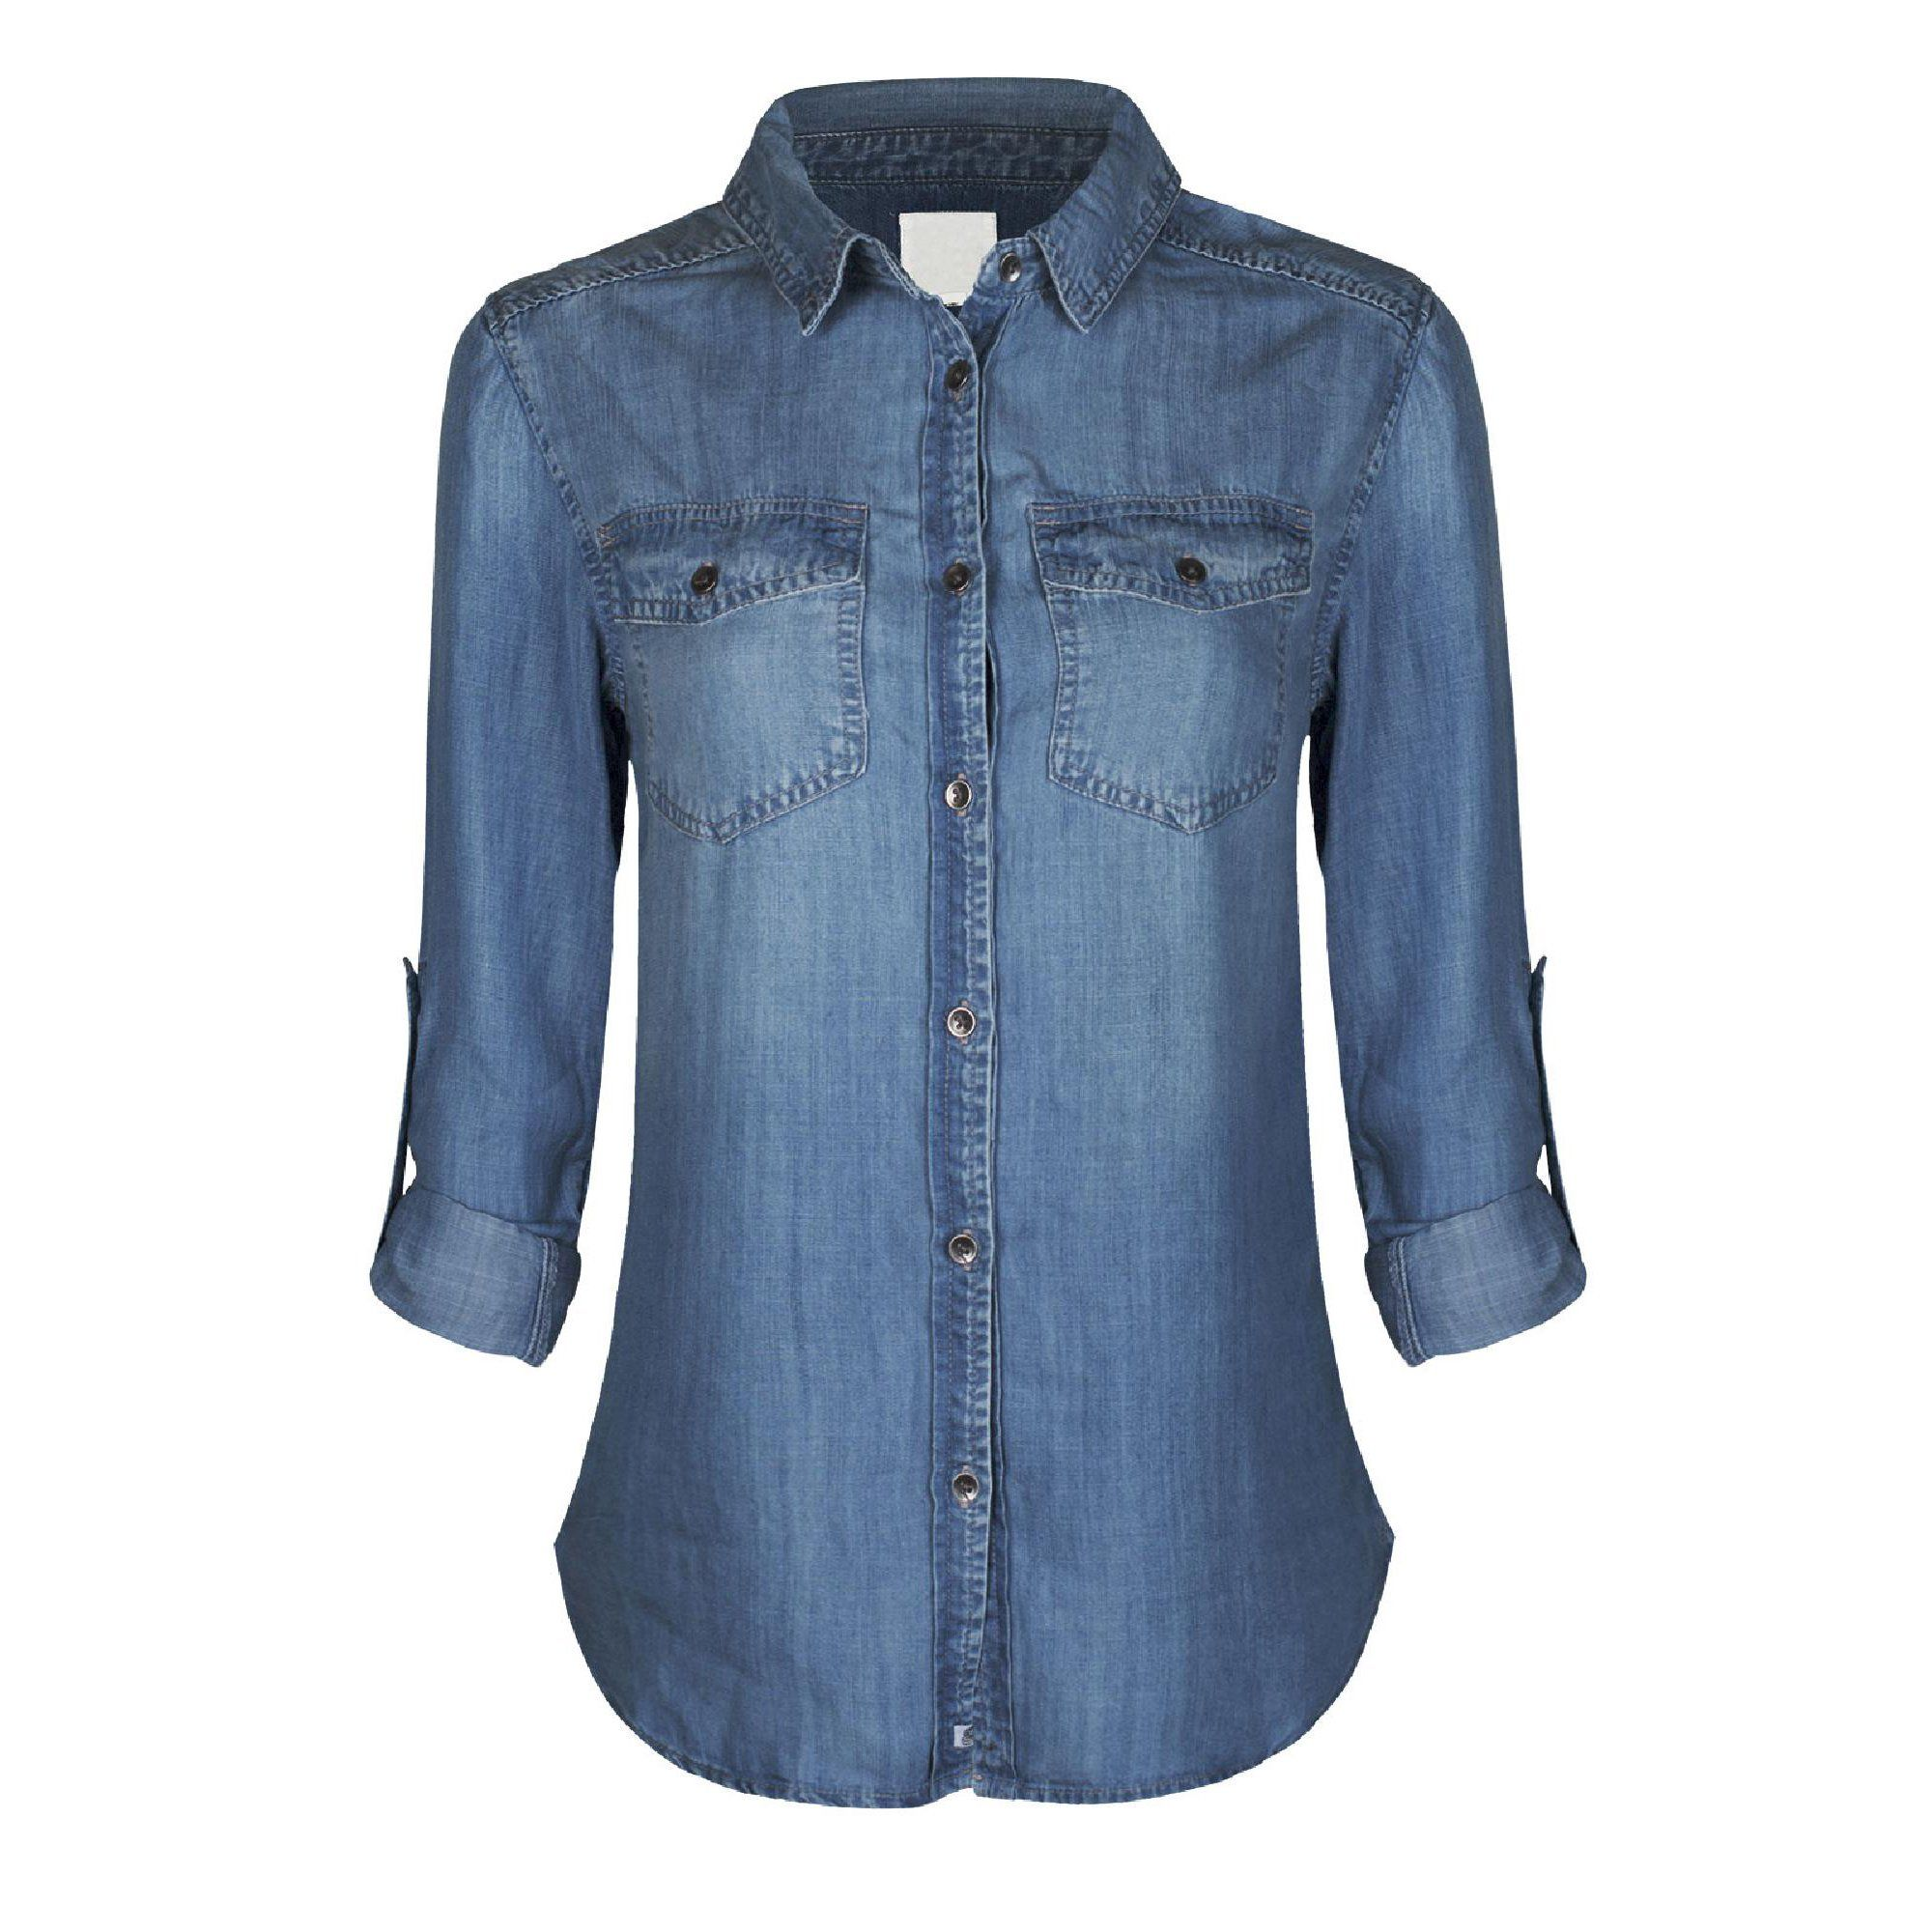 Made By Olivia Made By Olivia Women S Classic Long Roll Up Sleeve Button Down Denim Chambray Shirt Walmart Com In 2021 Womens Denim Shirt Chambray Denim Shirt Blue Shirt With Jeans [ 2000 x 2000 Pixel ]